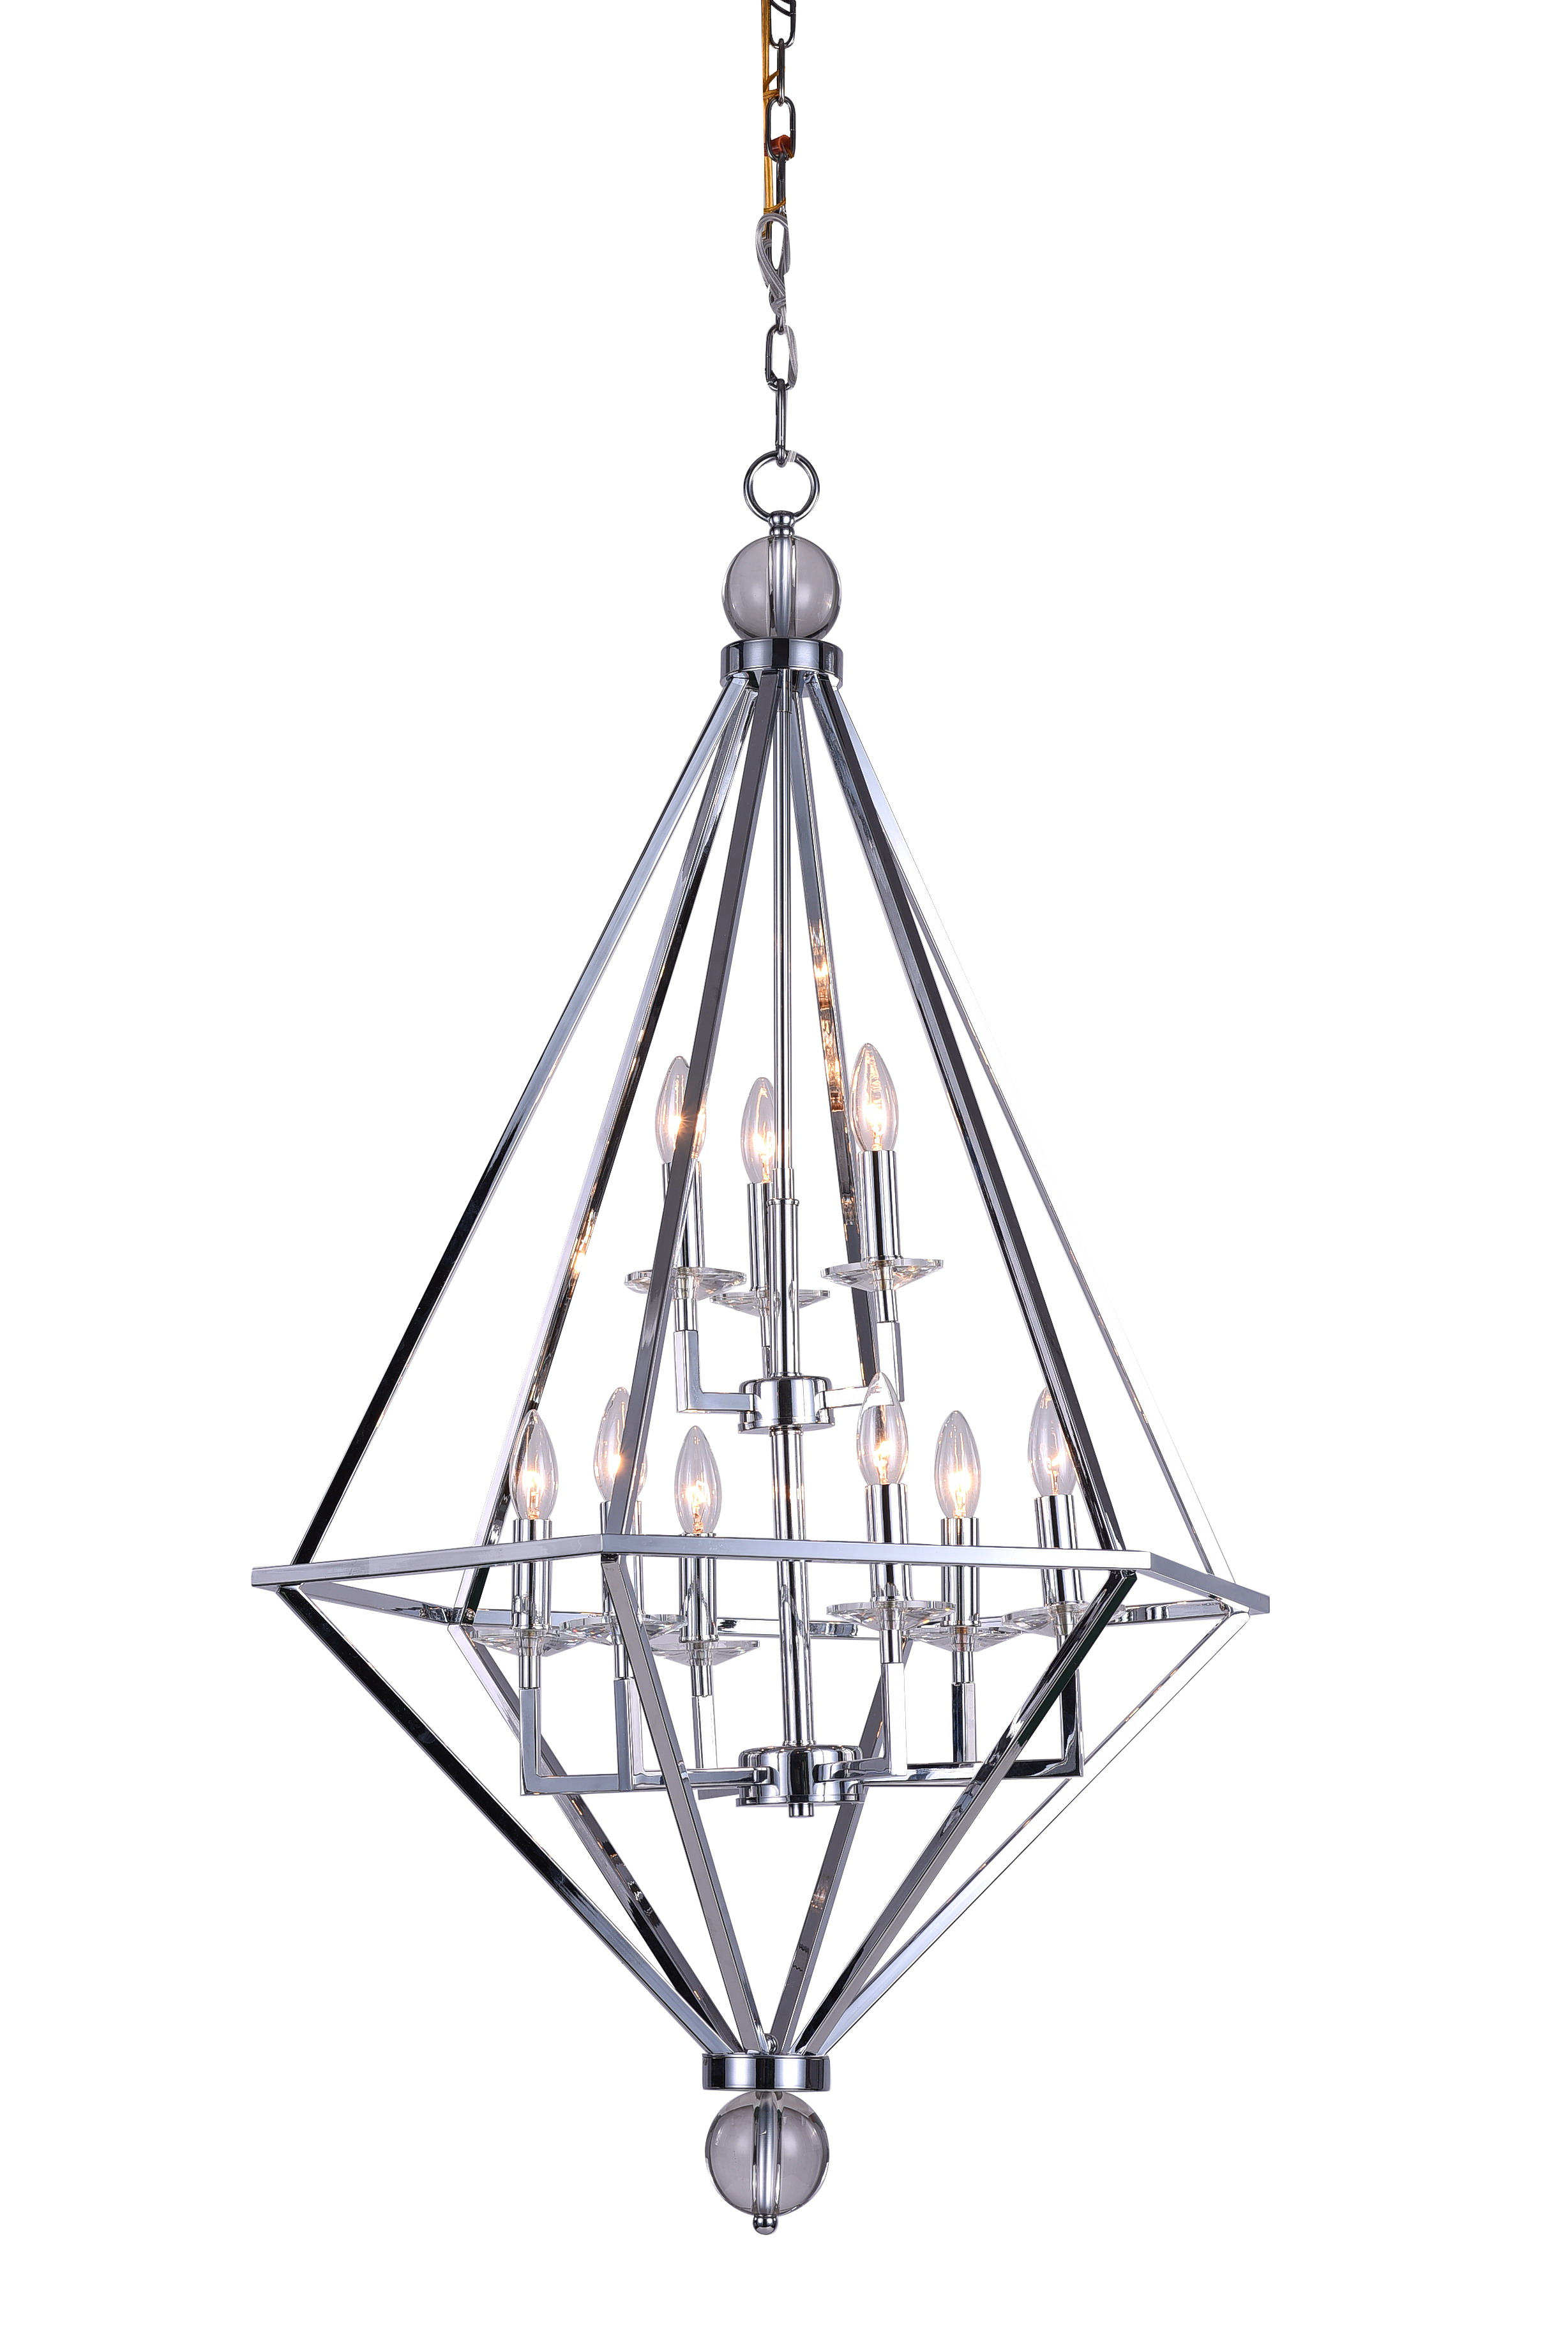 Popular Kenedy 9 Light Candle Style Chandeliers Pertaining To Cwi Lighting (View 21 of 25)